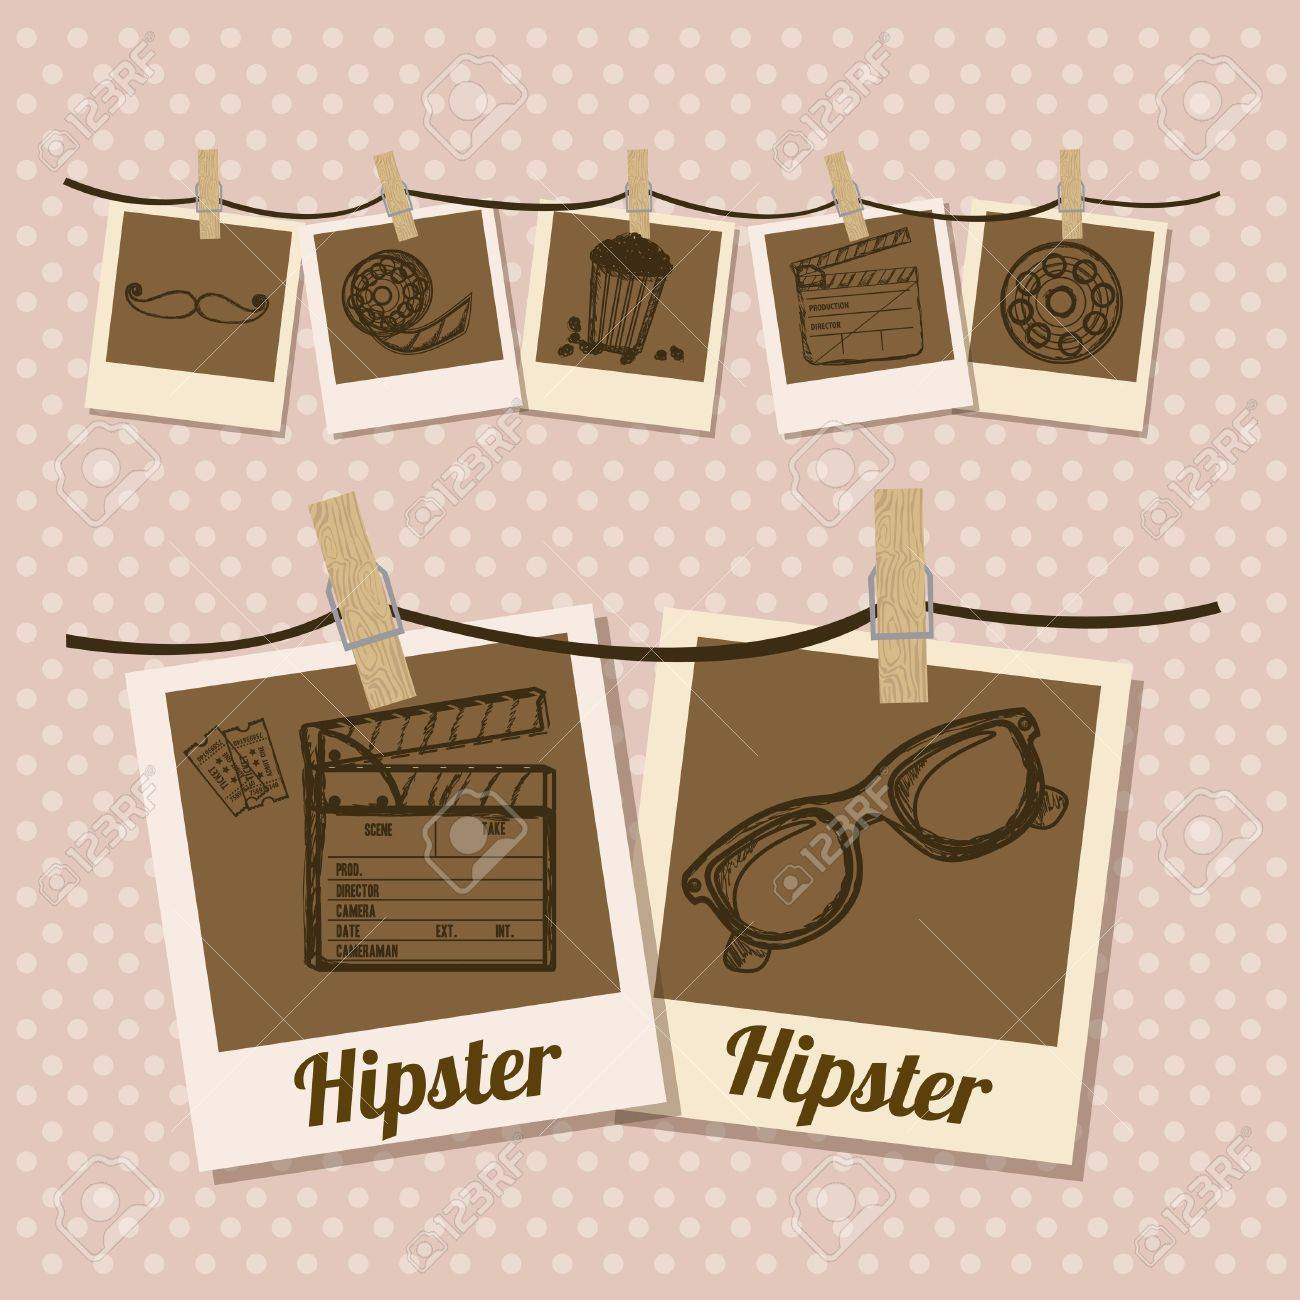 Illustration of style hipster, hipster culture and community, vector illustration Stock Vector - 19461993